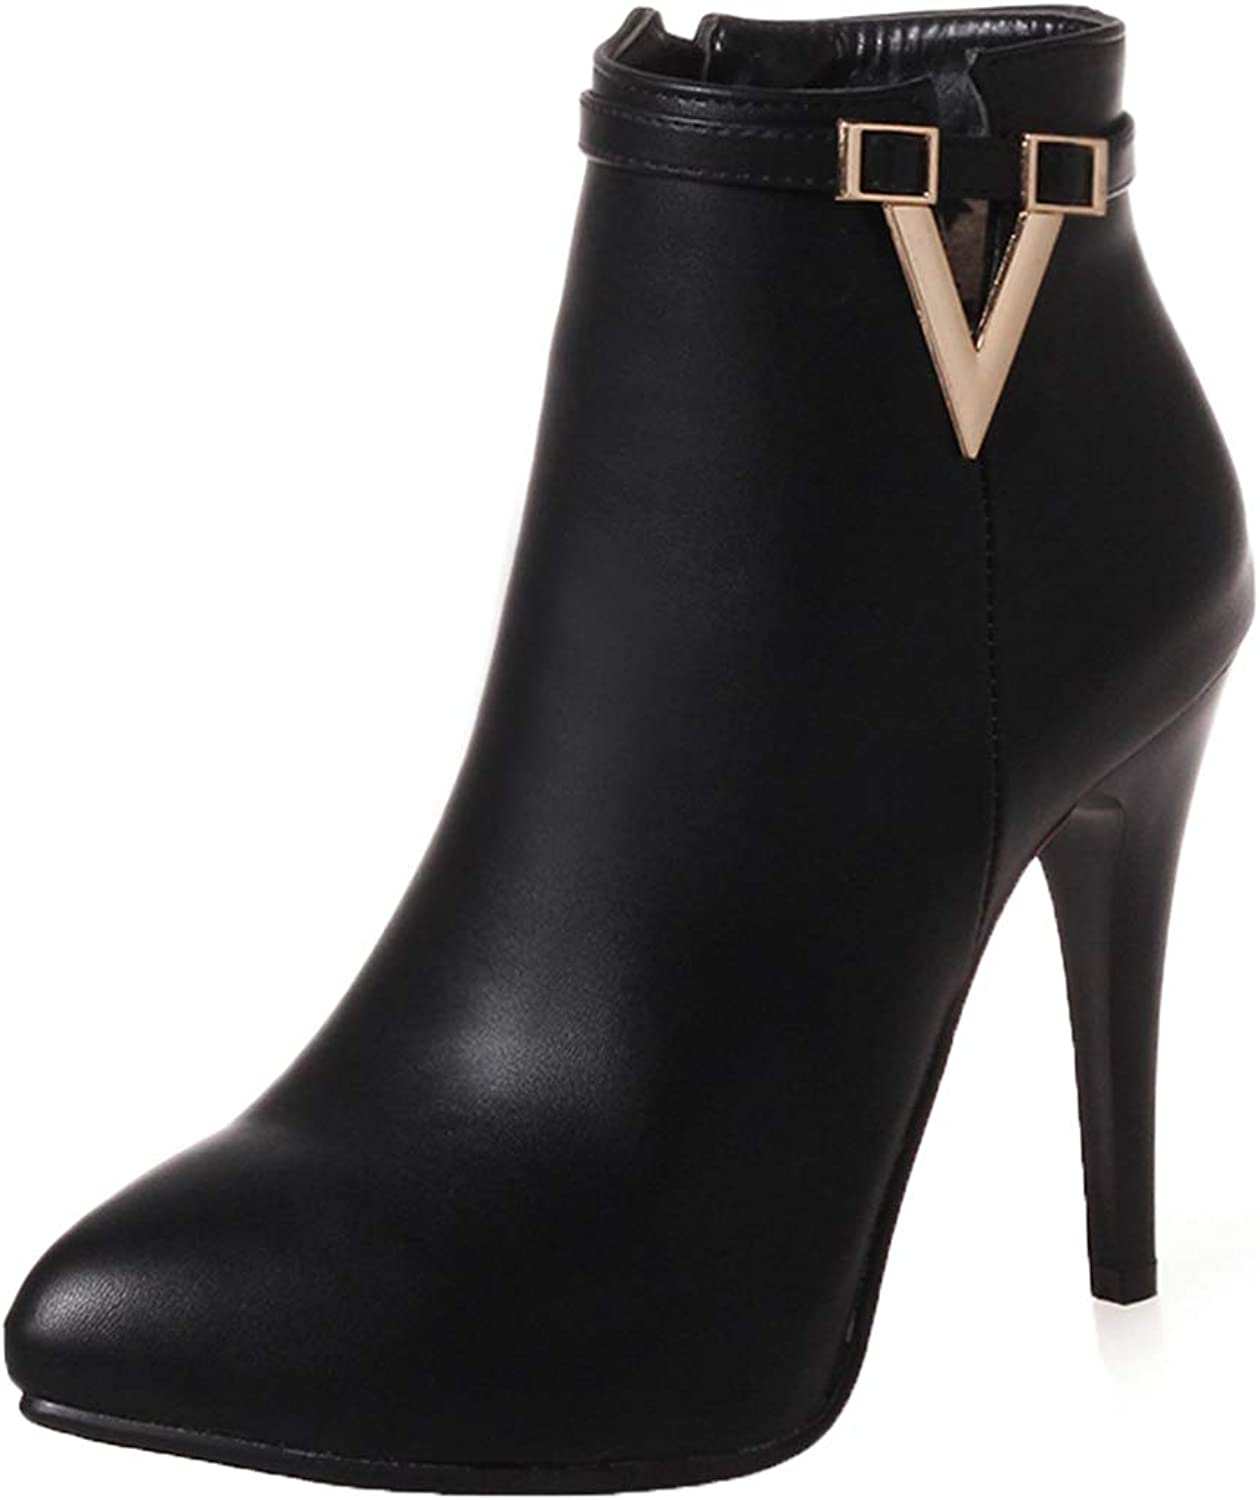 Vitalo Womens Classic High Heel Stiletto Point Toe Ankle Boots Zip Up Autumn Dress Short Booties